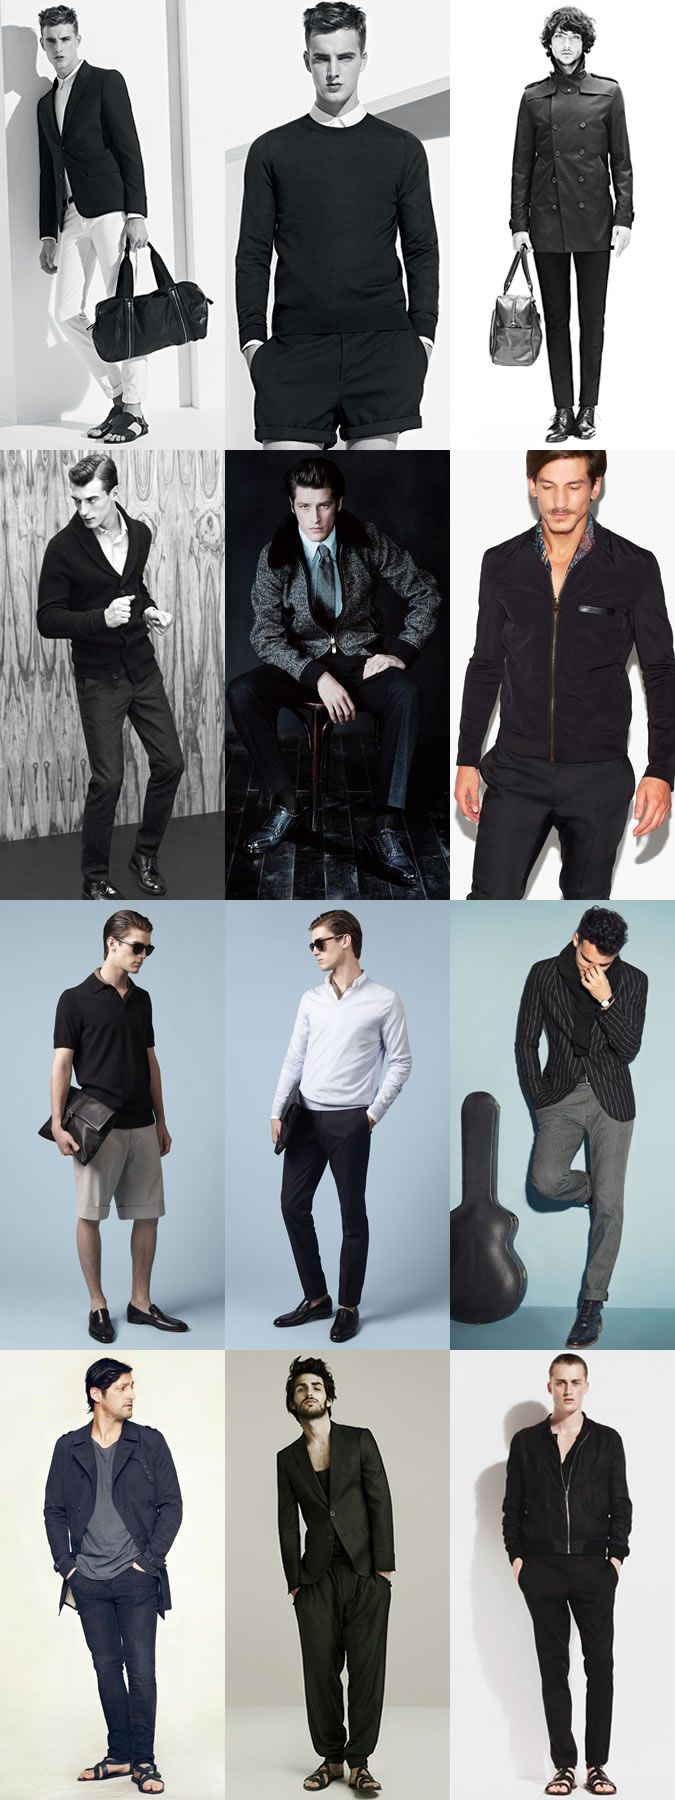 More inspiration for my Summer 2013 Wardrobe. Men's Monochrome Tonal Outfit Lookbook Inspiration